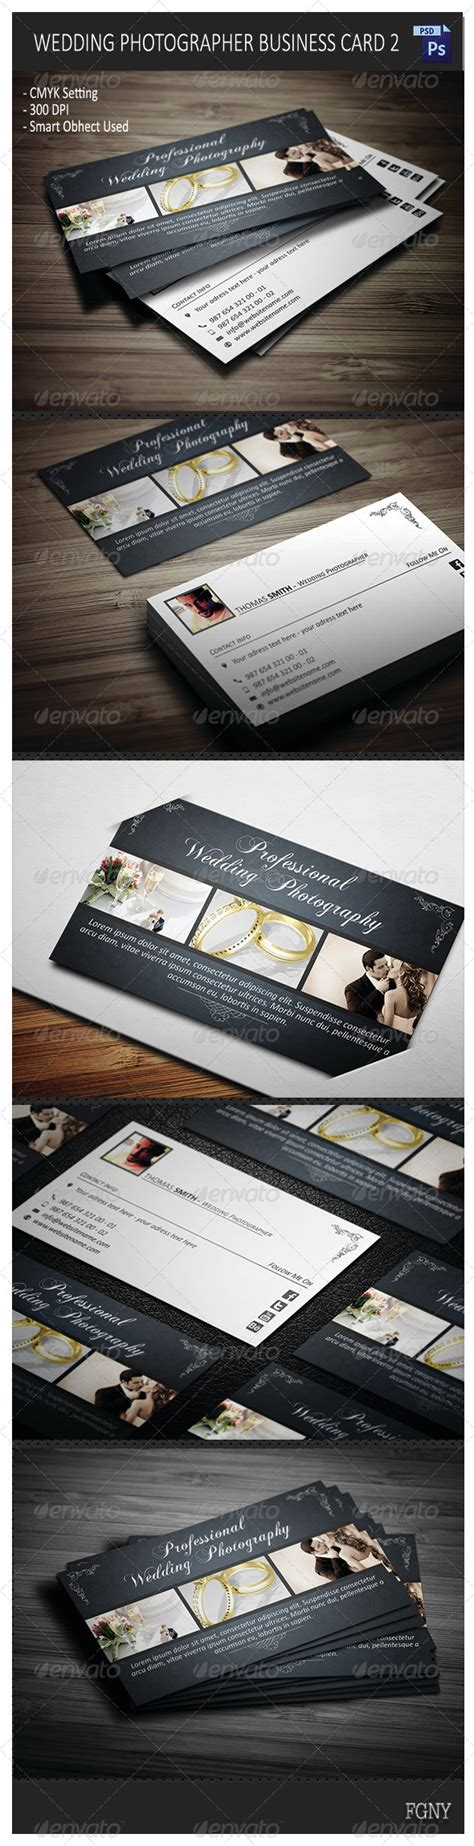 graphicriver wedding photography business card template wedding photographer business card 2 graphicriver